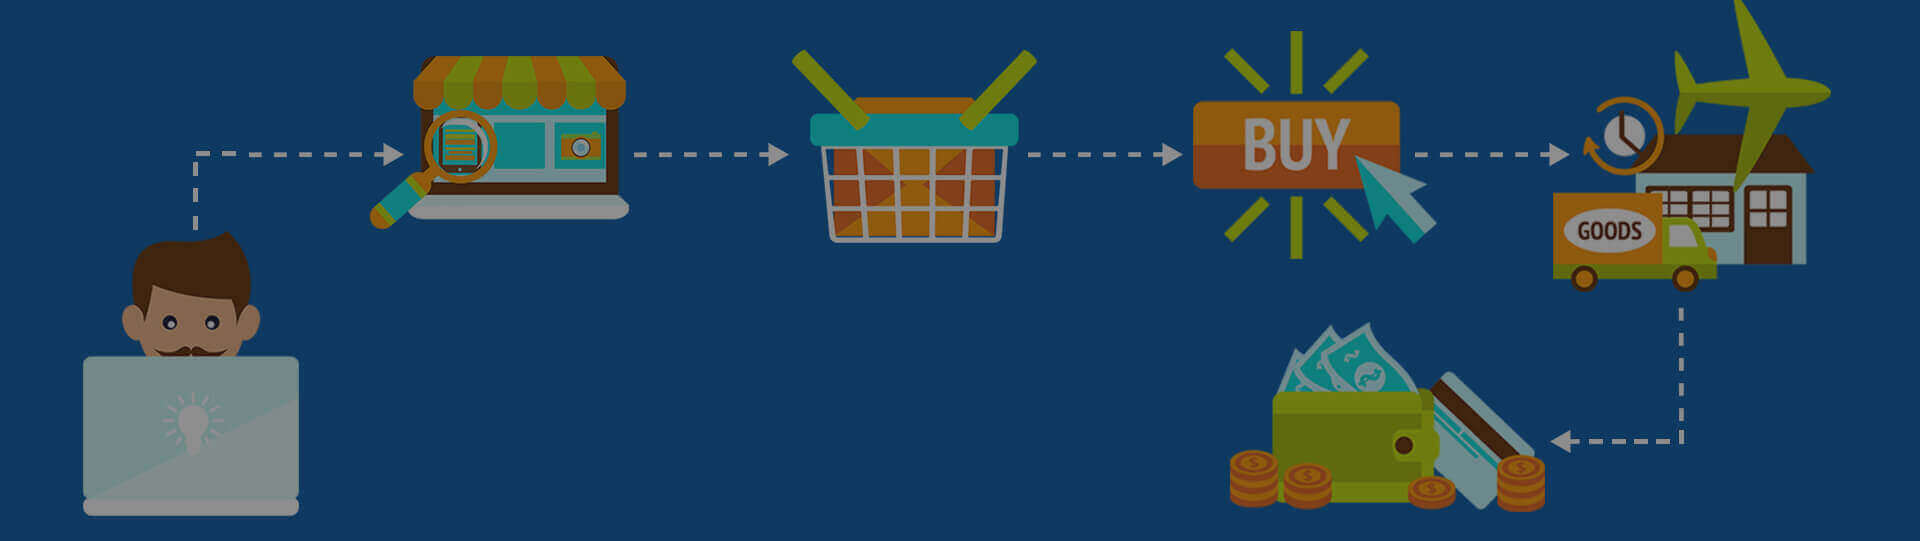 The ultimate guide to create a perfect ecommerce mobile app for your existing online store